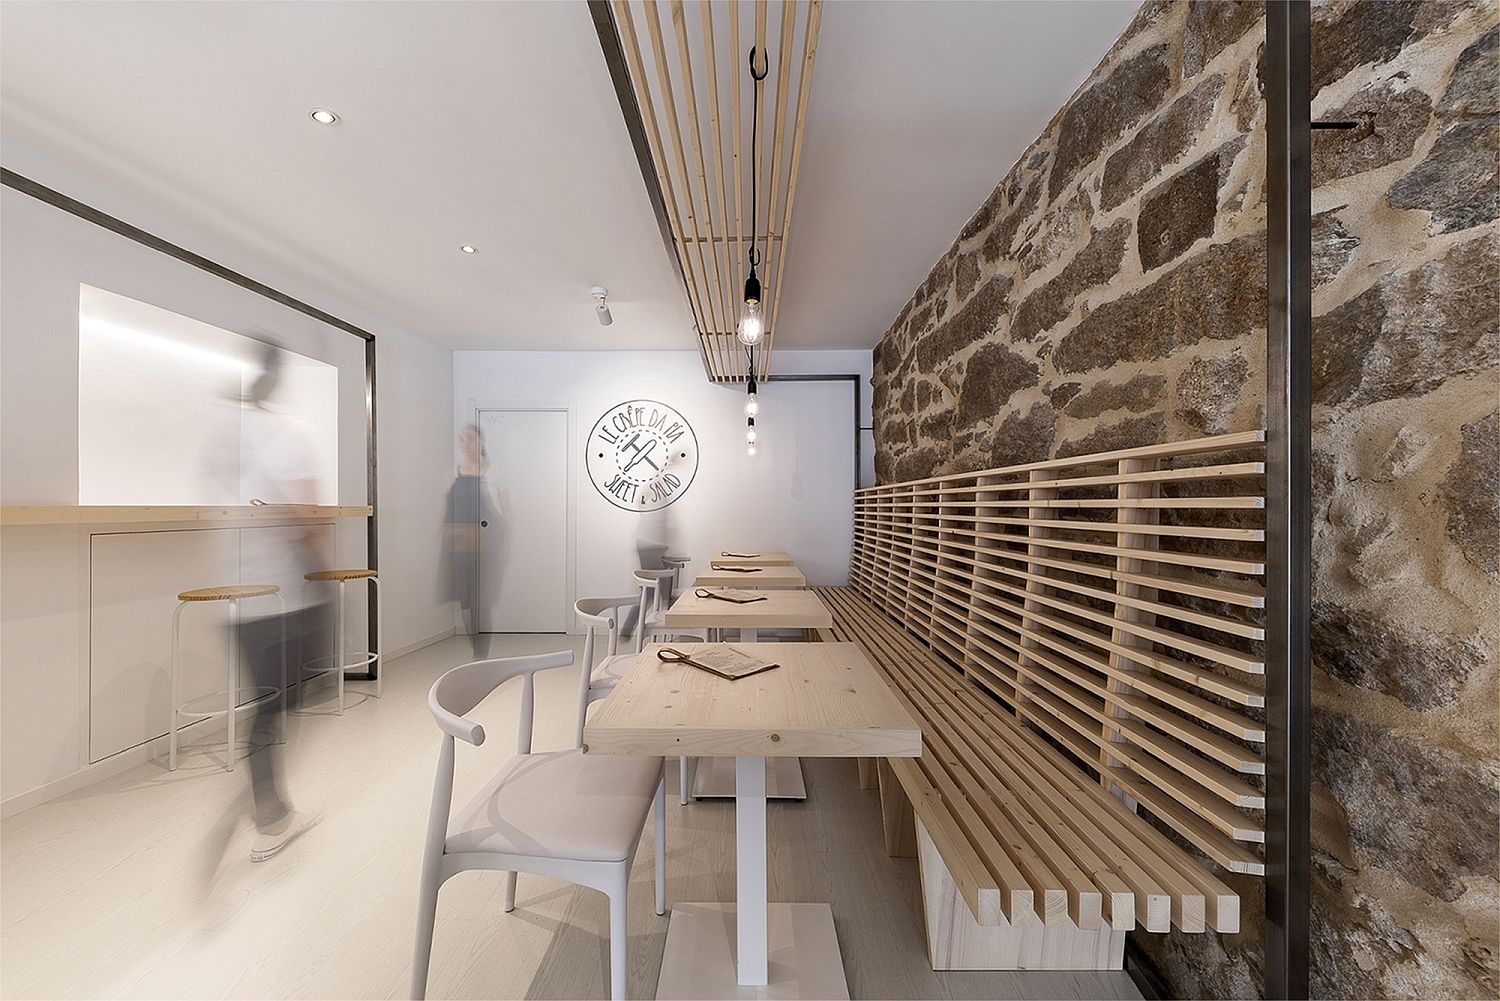 Cozy and space-savvy wooden seating inside the tiny Spanish restaurant